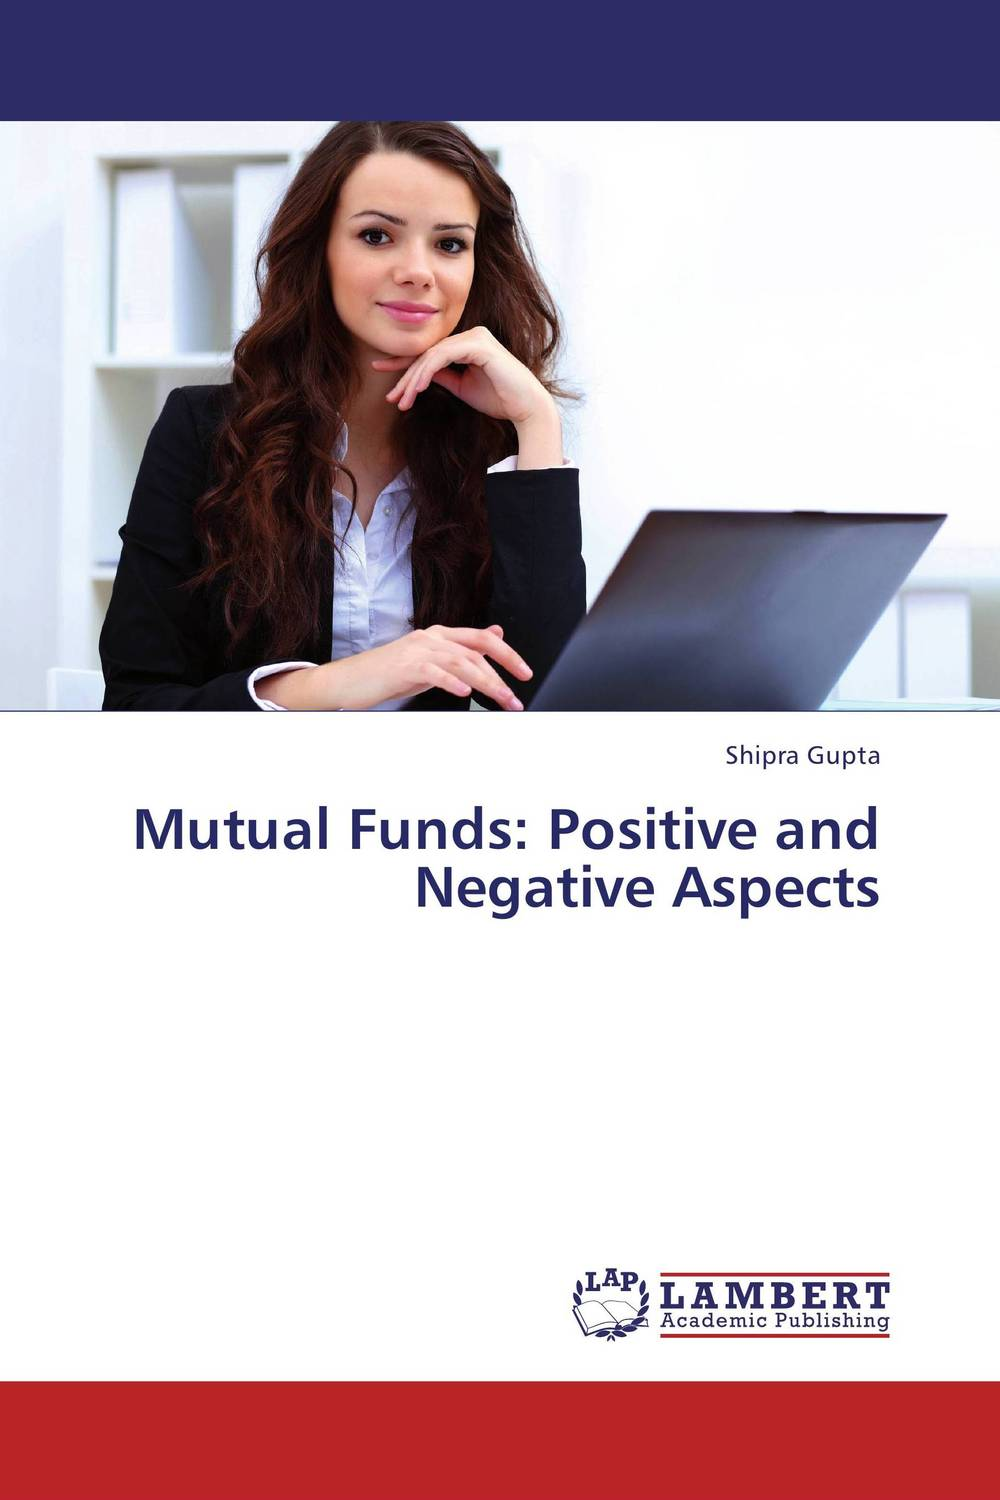 Mutual Funds: Positive and Negative Aspects john haslem a mutual funds portfolio structures analysis management and stewardship